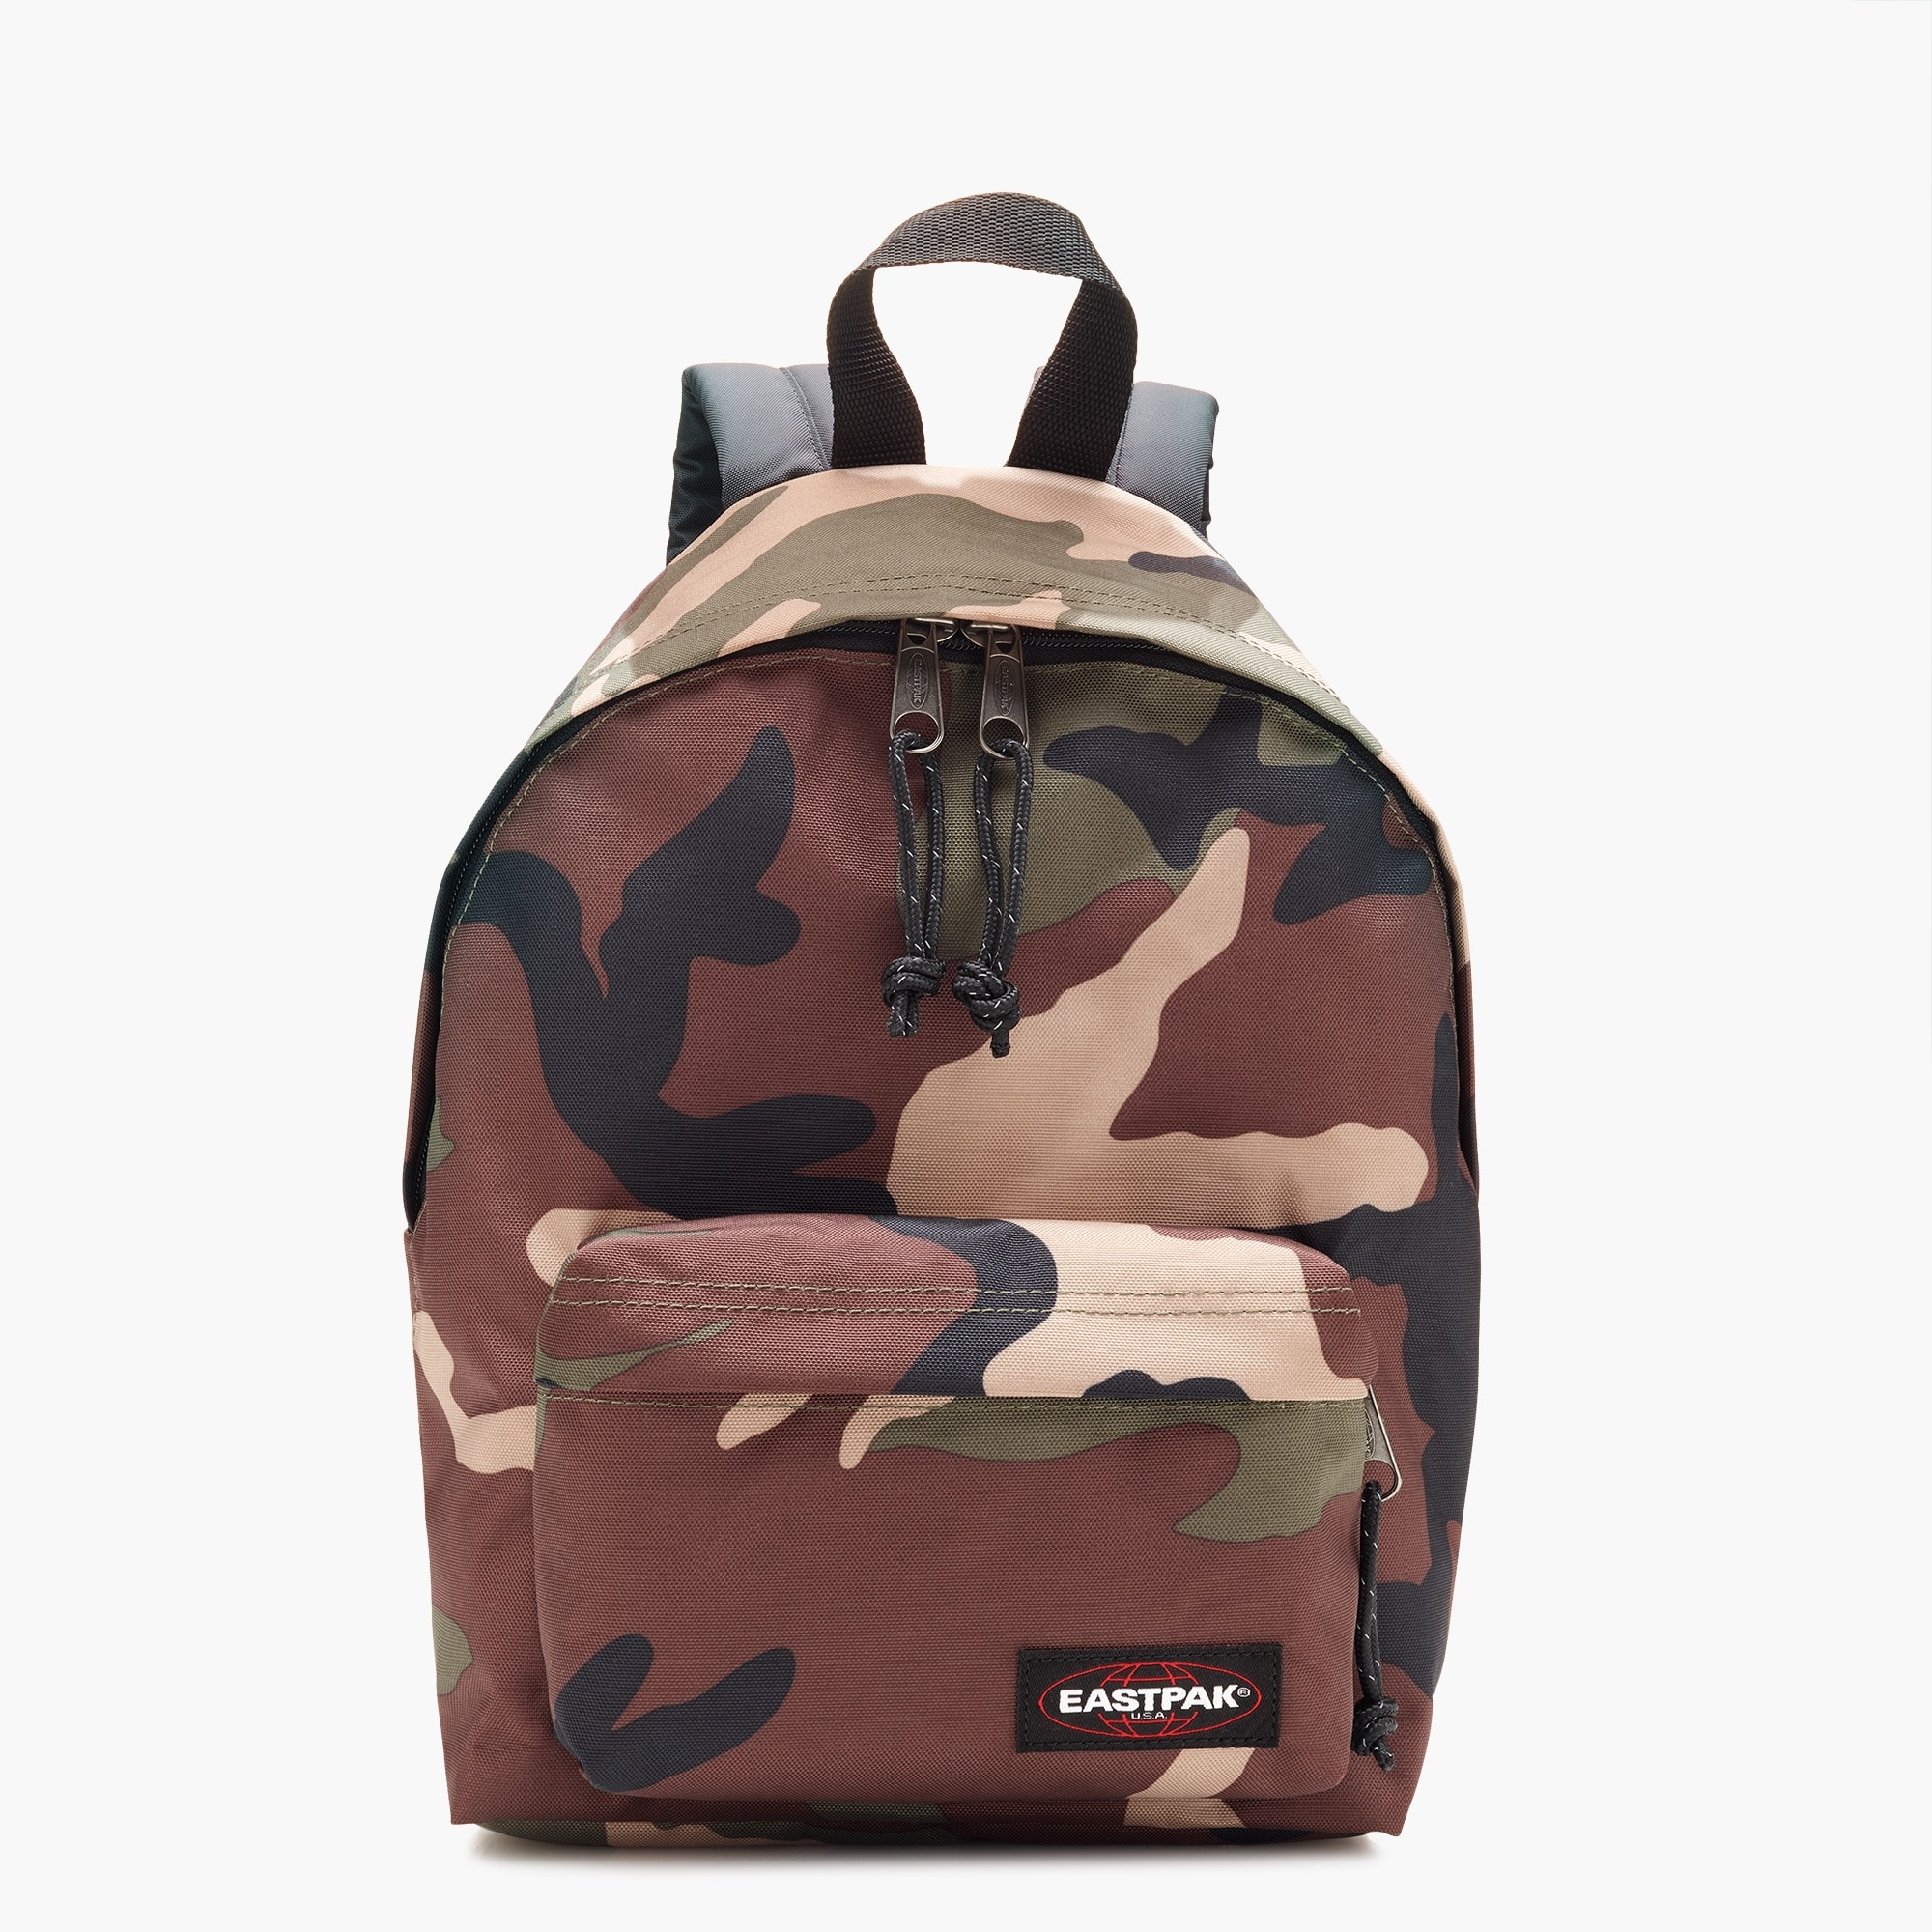 Image 6 for Eastpak® orbit backpack